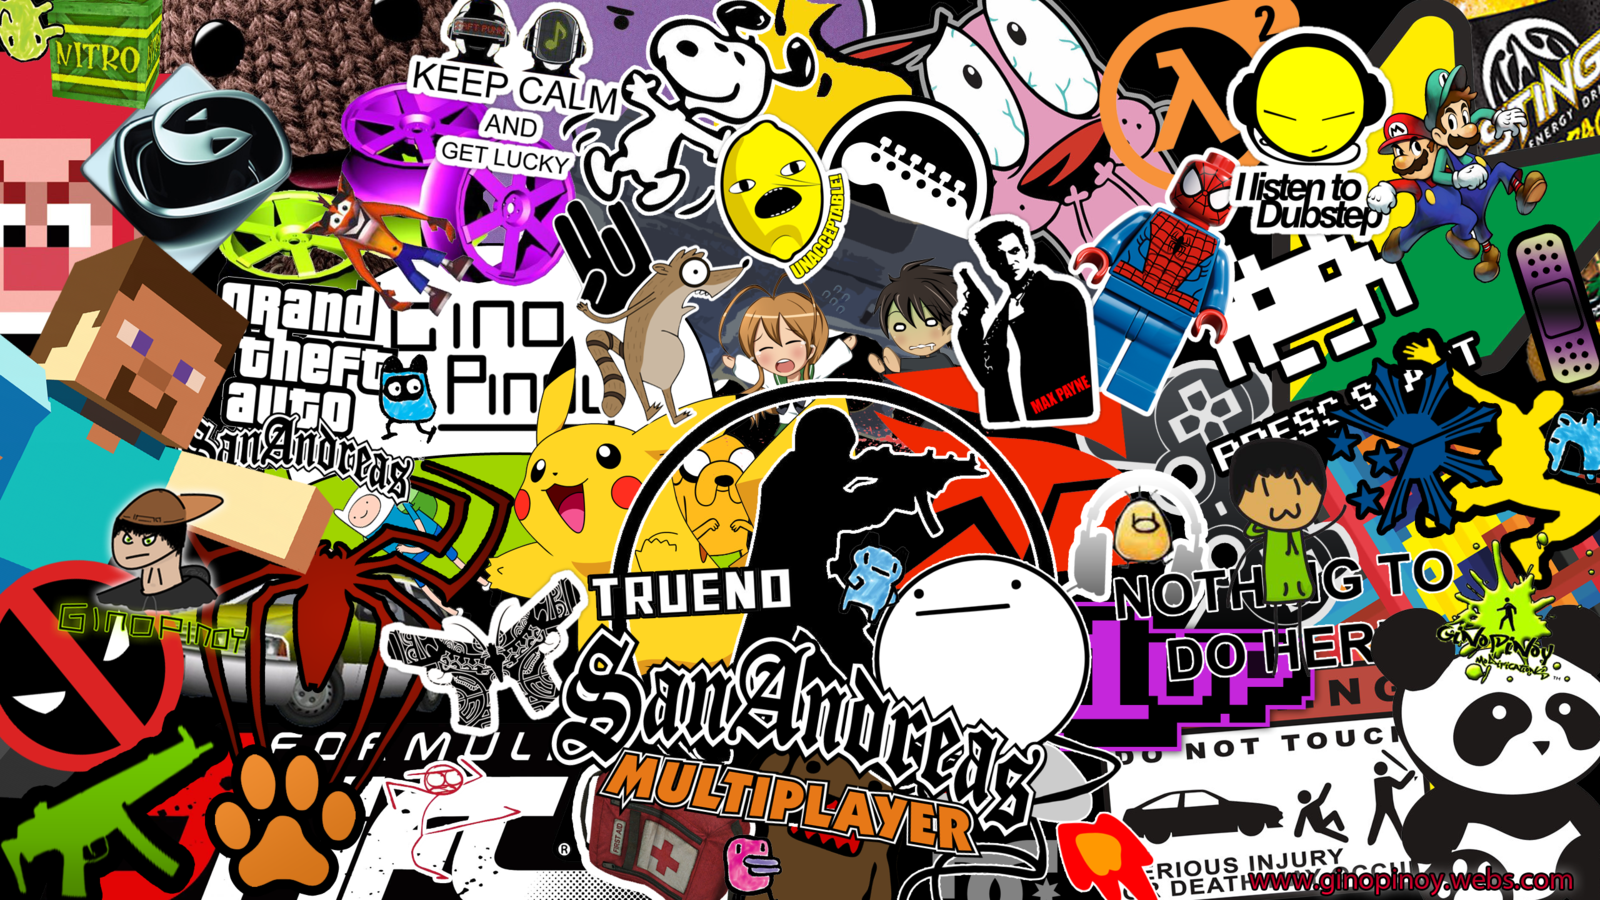 Sticker bomb wallpaper images amp pictures becuo html code wwe stickerbomb sub thai deviantart